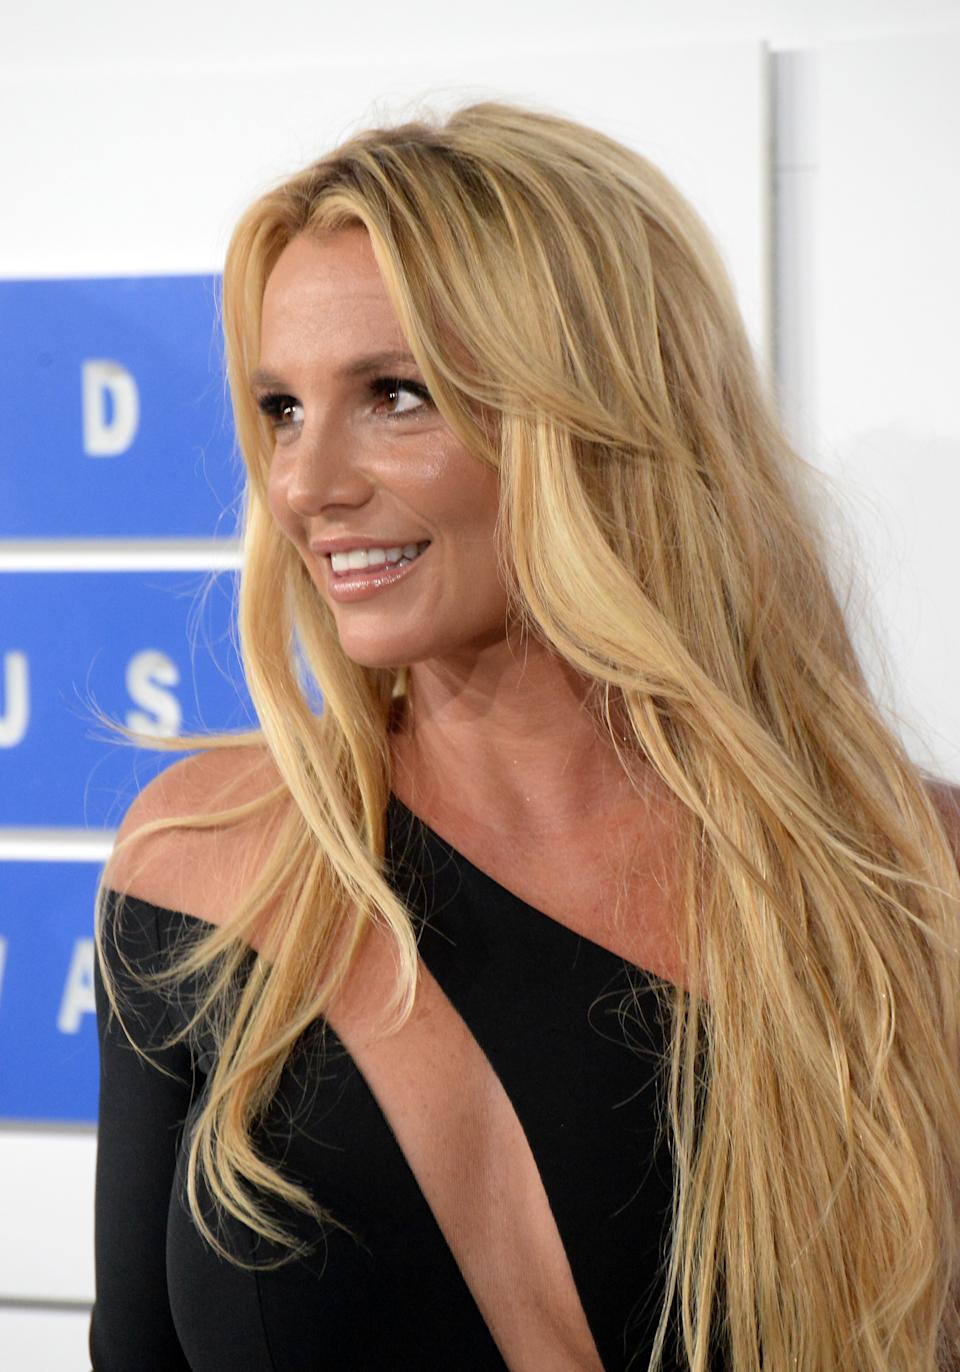 Britney Spears was placed under a conservatorship in 2008. (Photo by Jeff Kravitz/FilmMagic)